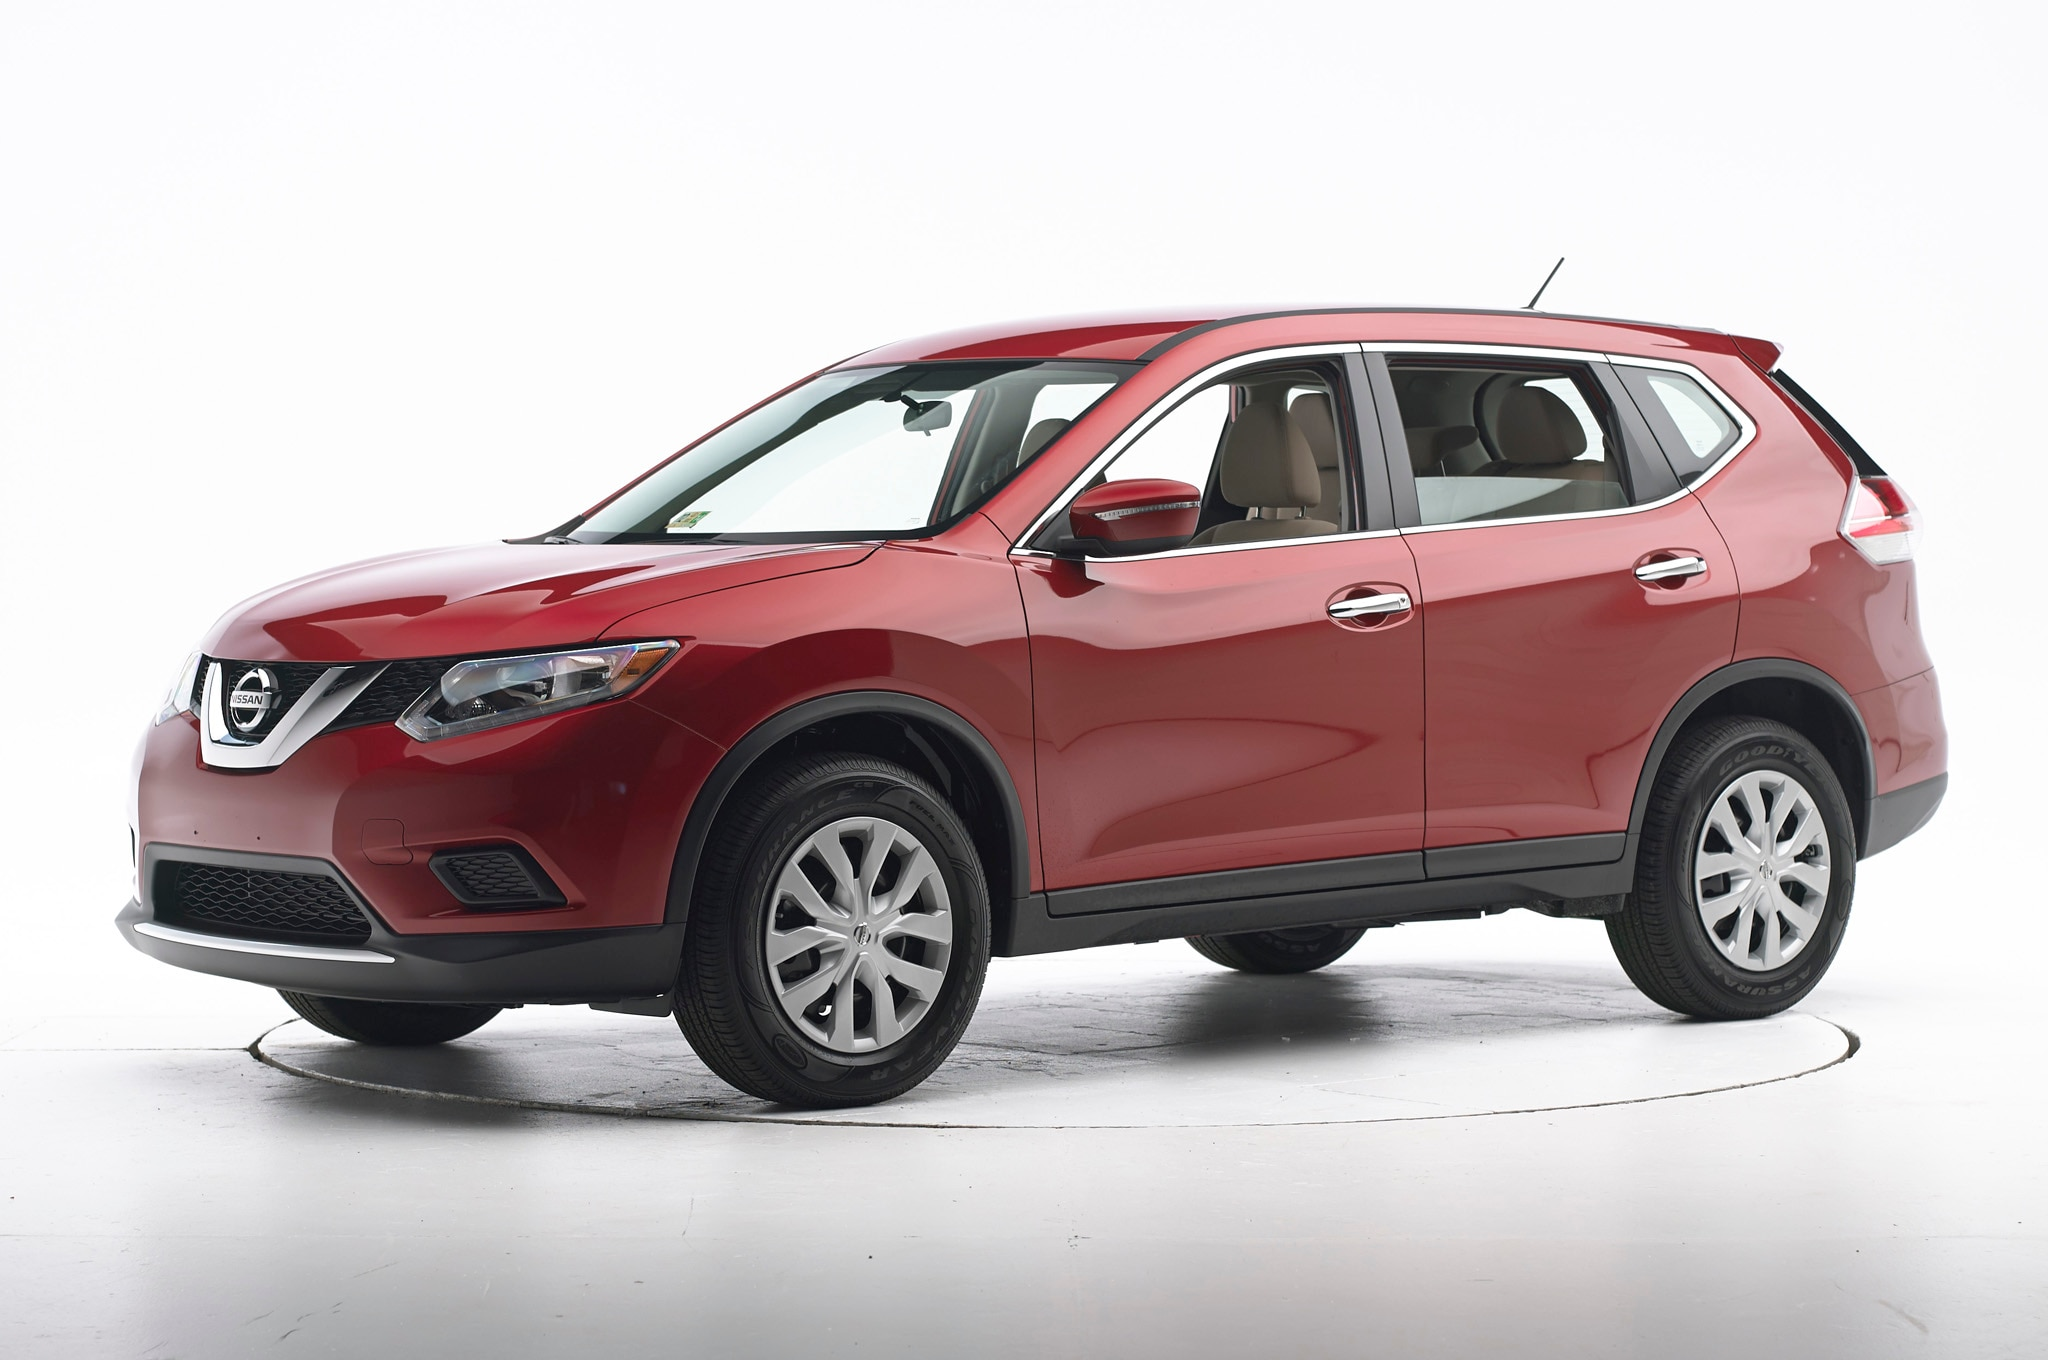 2014 nissan rogue rated top safety pick automobile magazine 2014 nissan rogue iihs top safety pick vanachro Choice Image